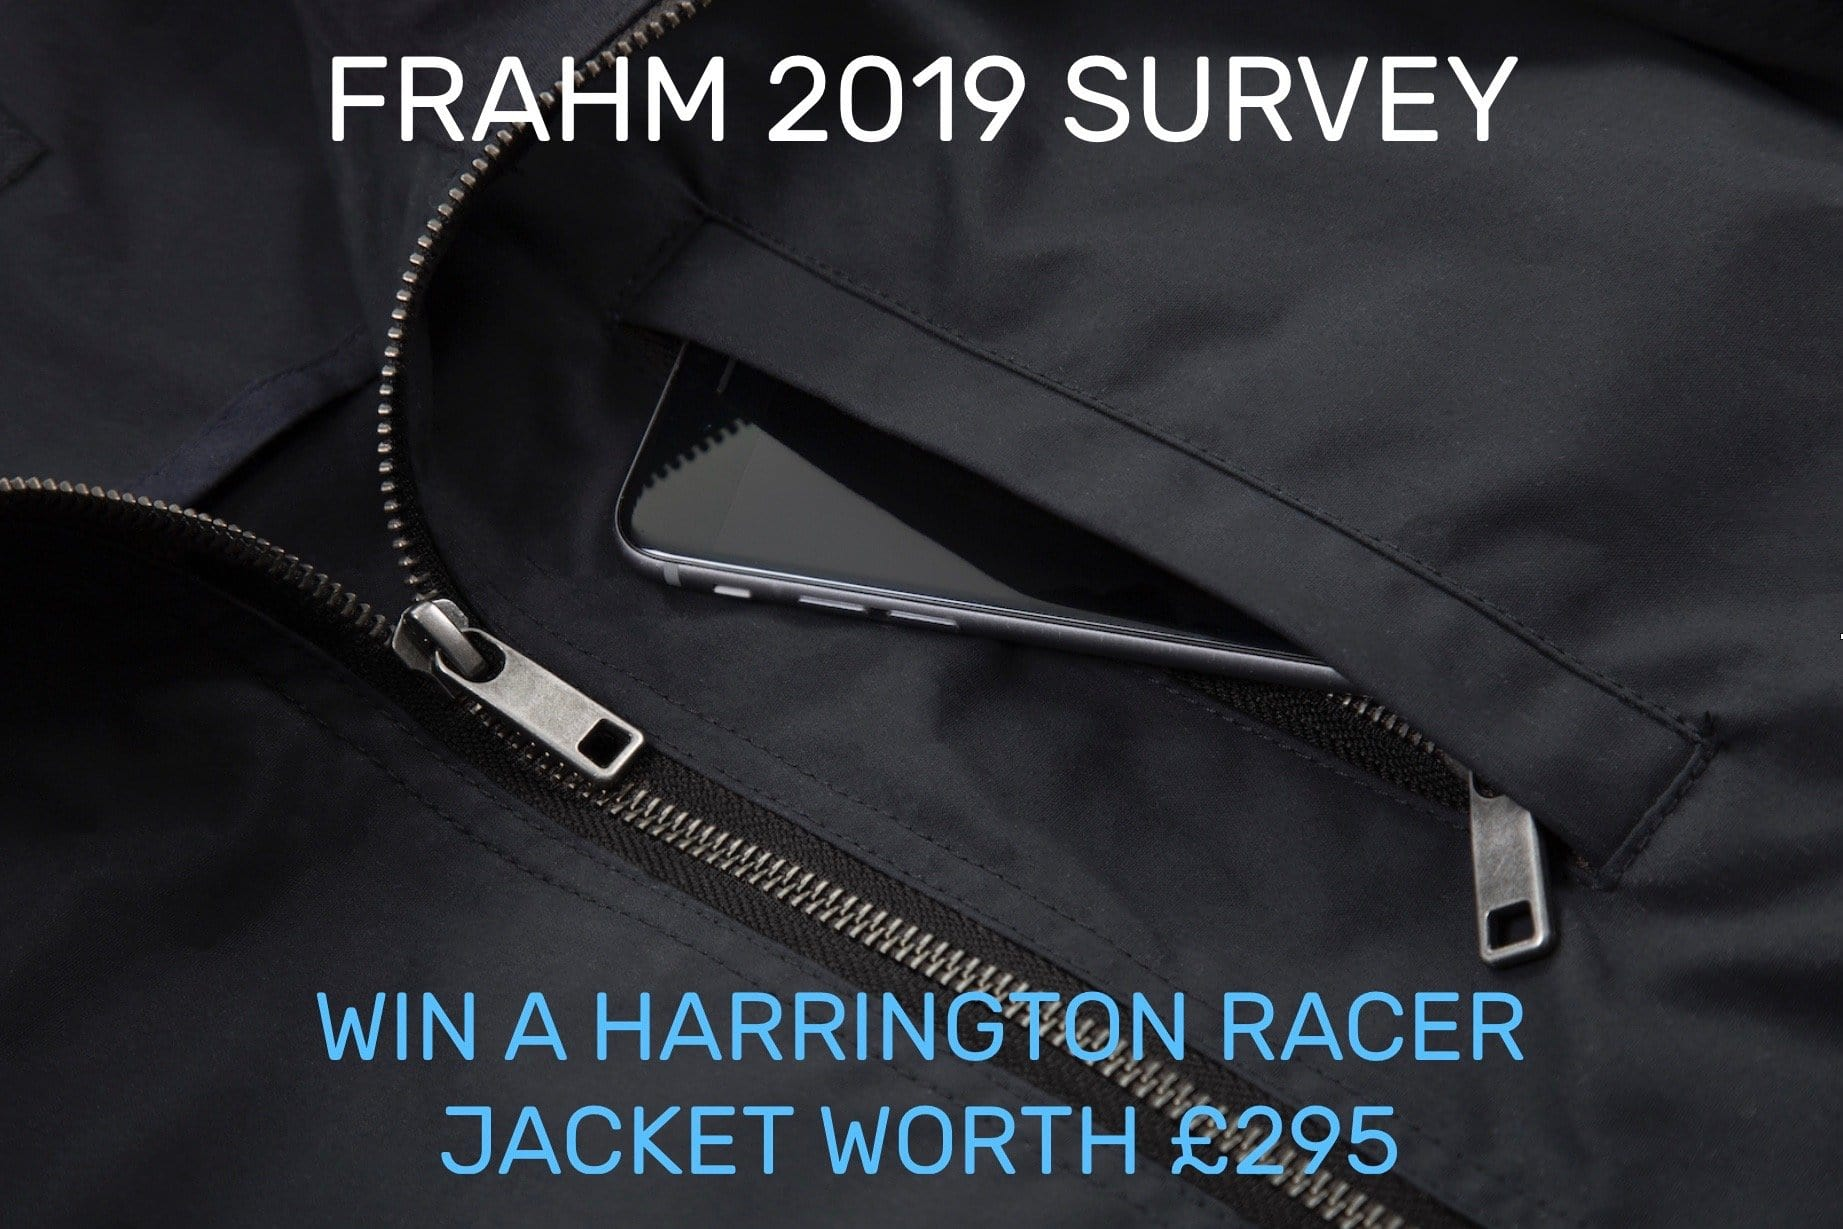 FRAHM 2019 SURVEY - HELP US HELP YOU (+ BRIBE)